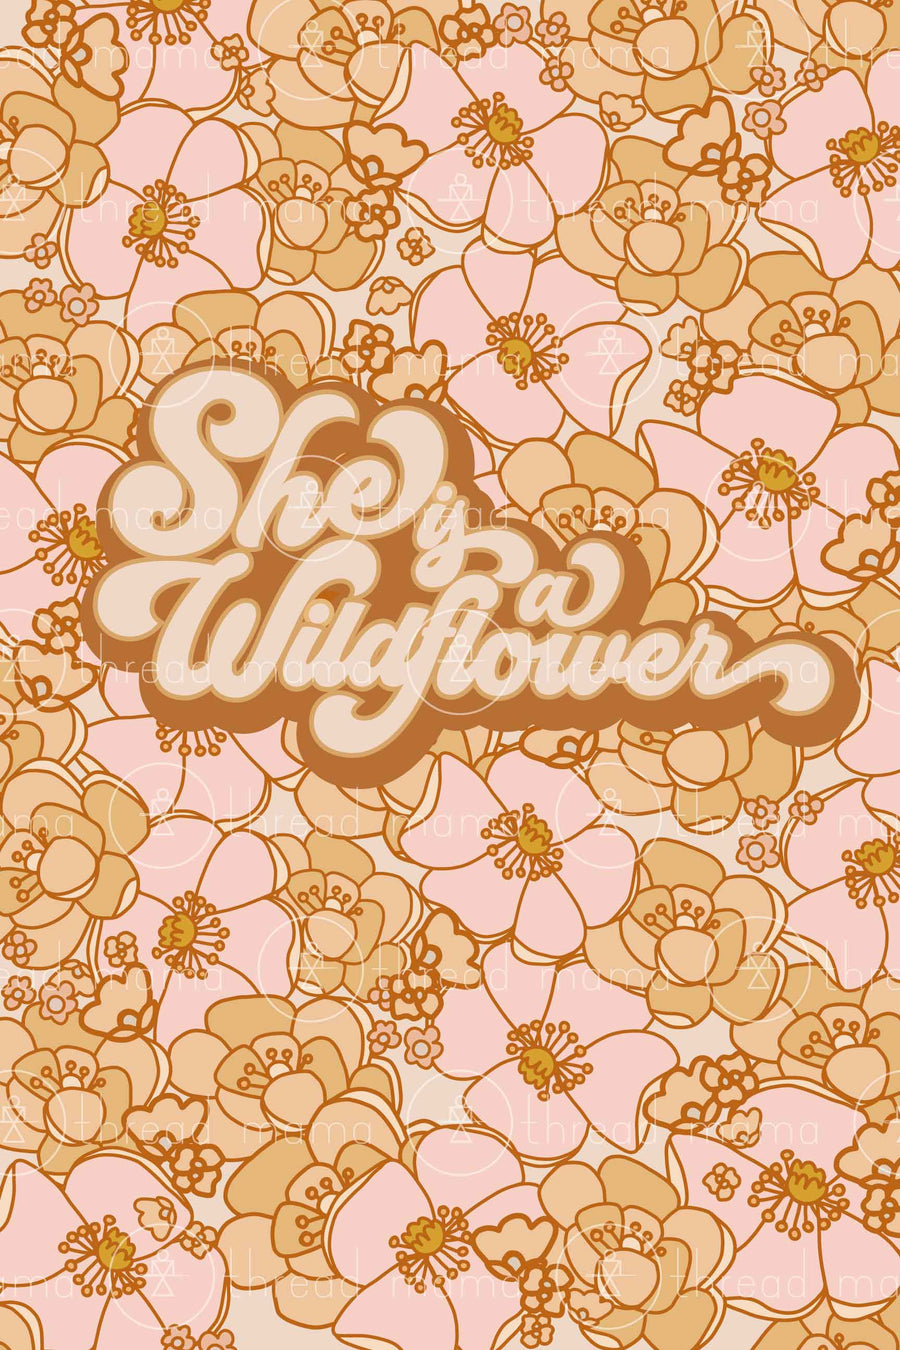 She is a Wildflower (Printable Poster)